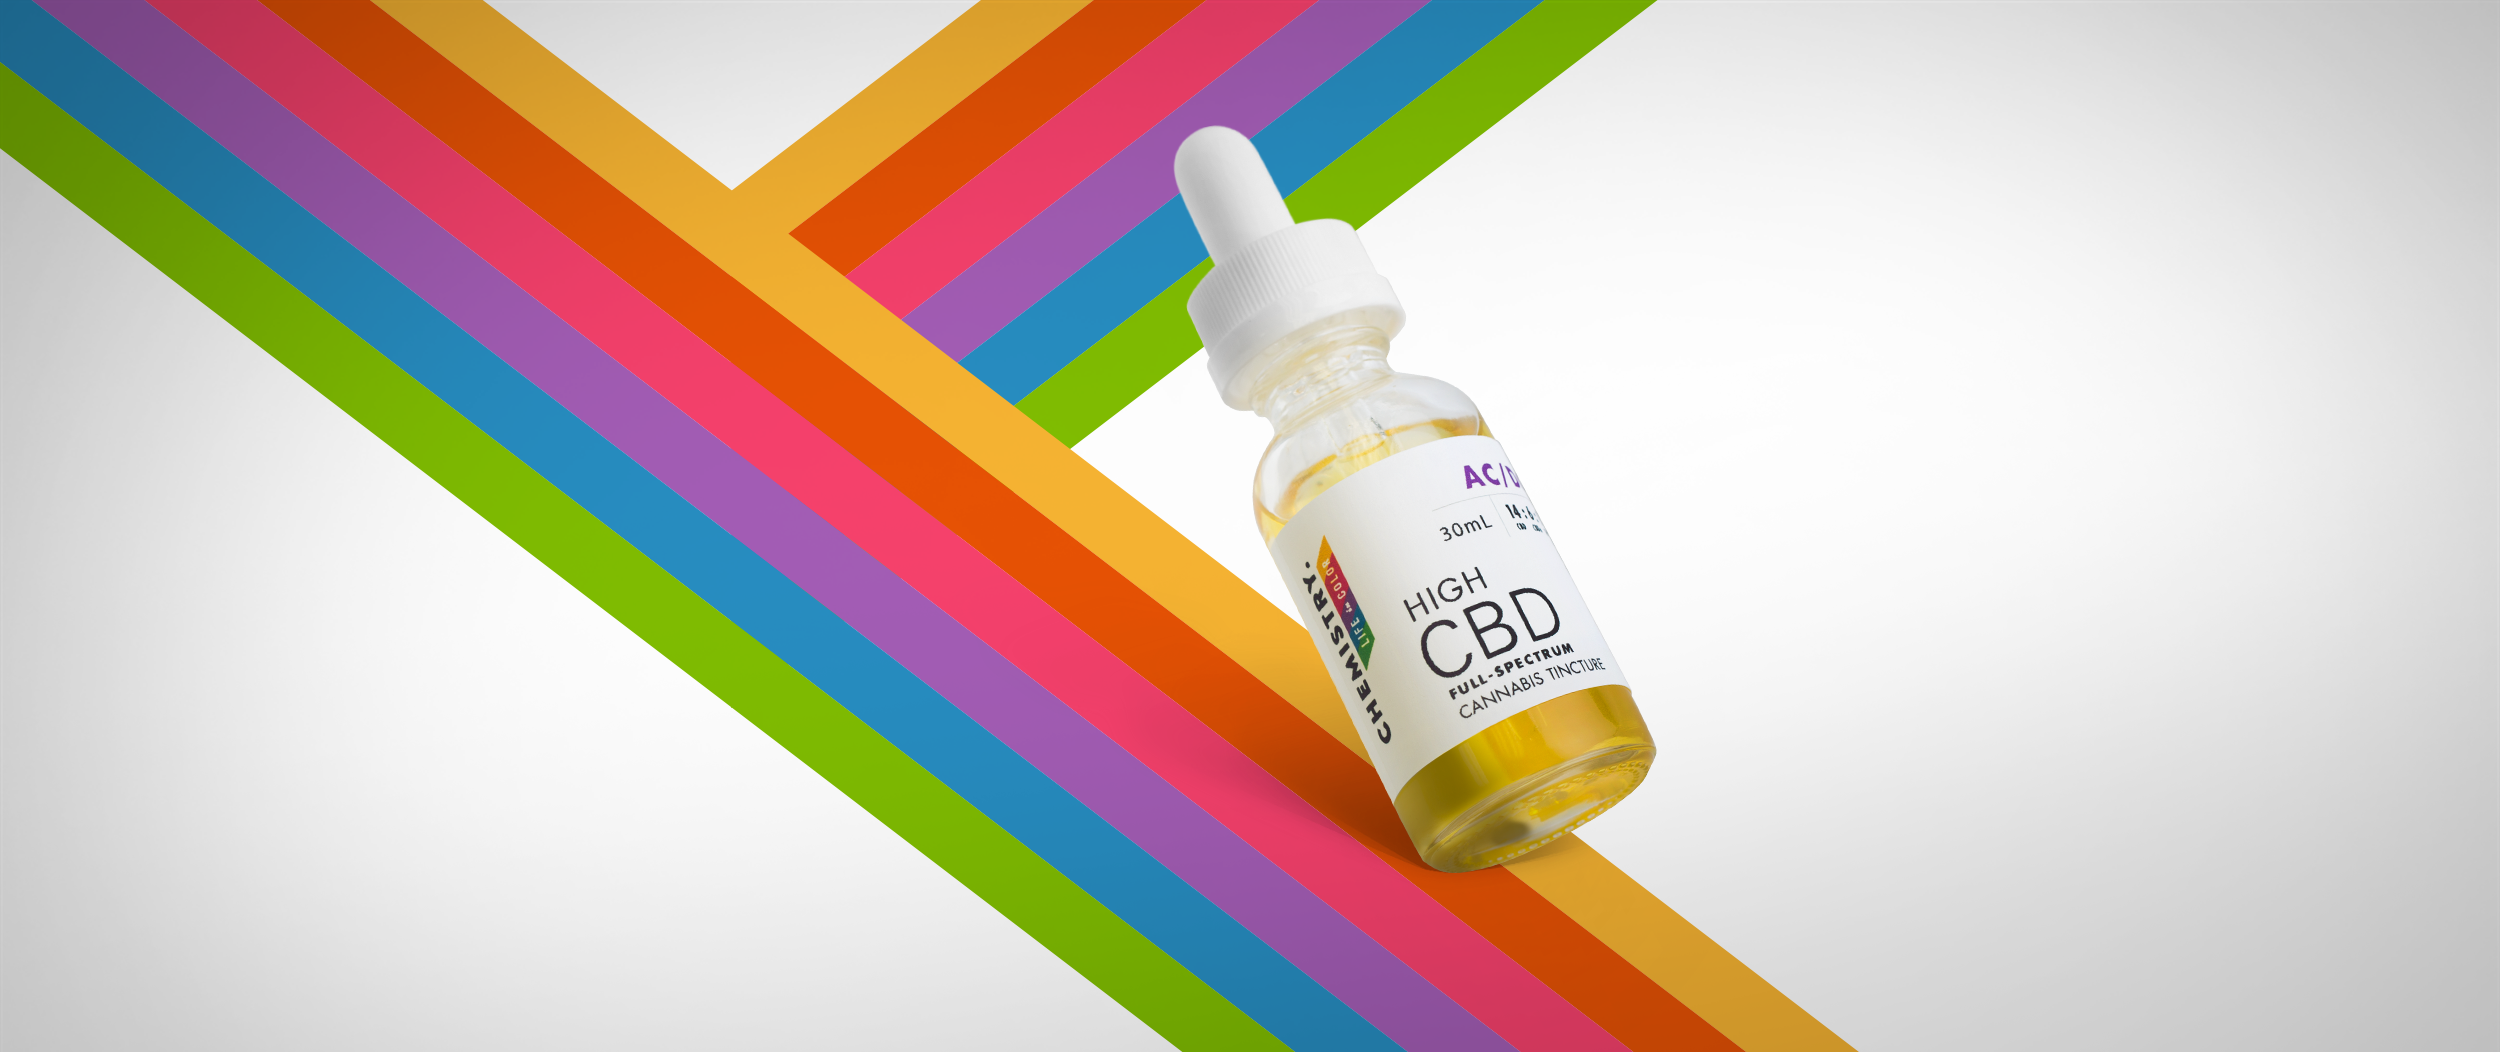 Chemistry High CBD Cannabis Tincture Packaging Design